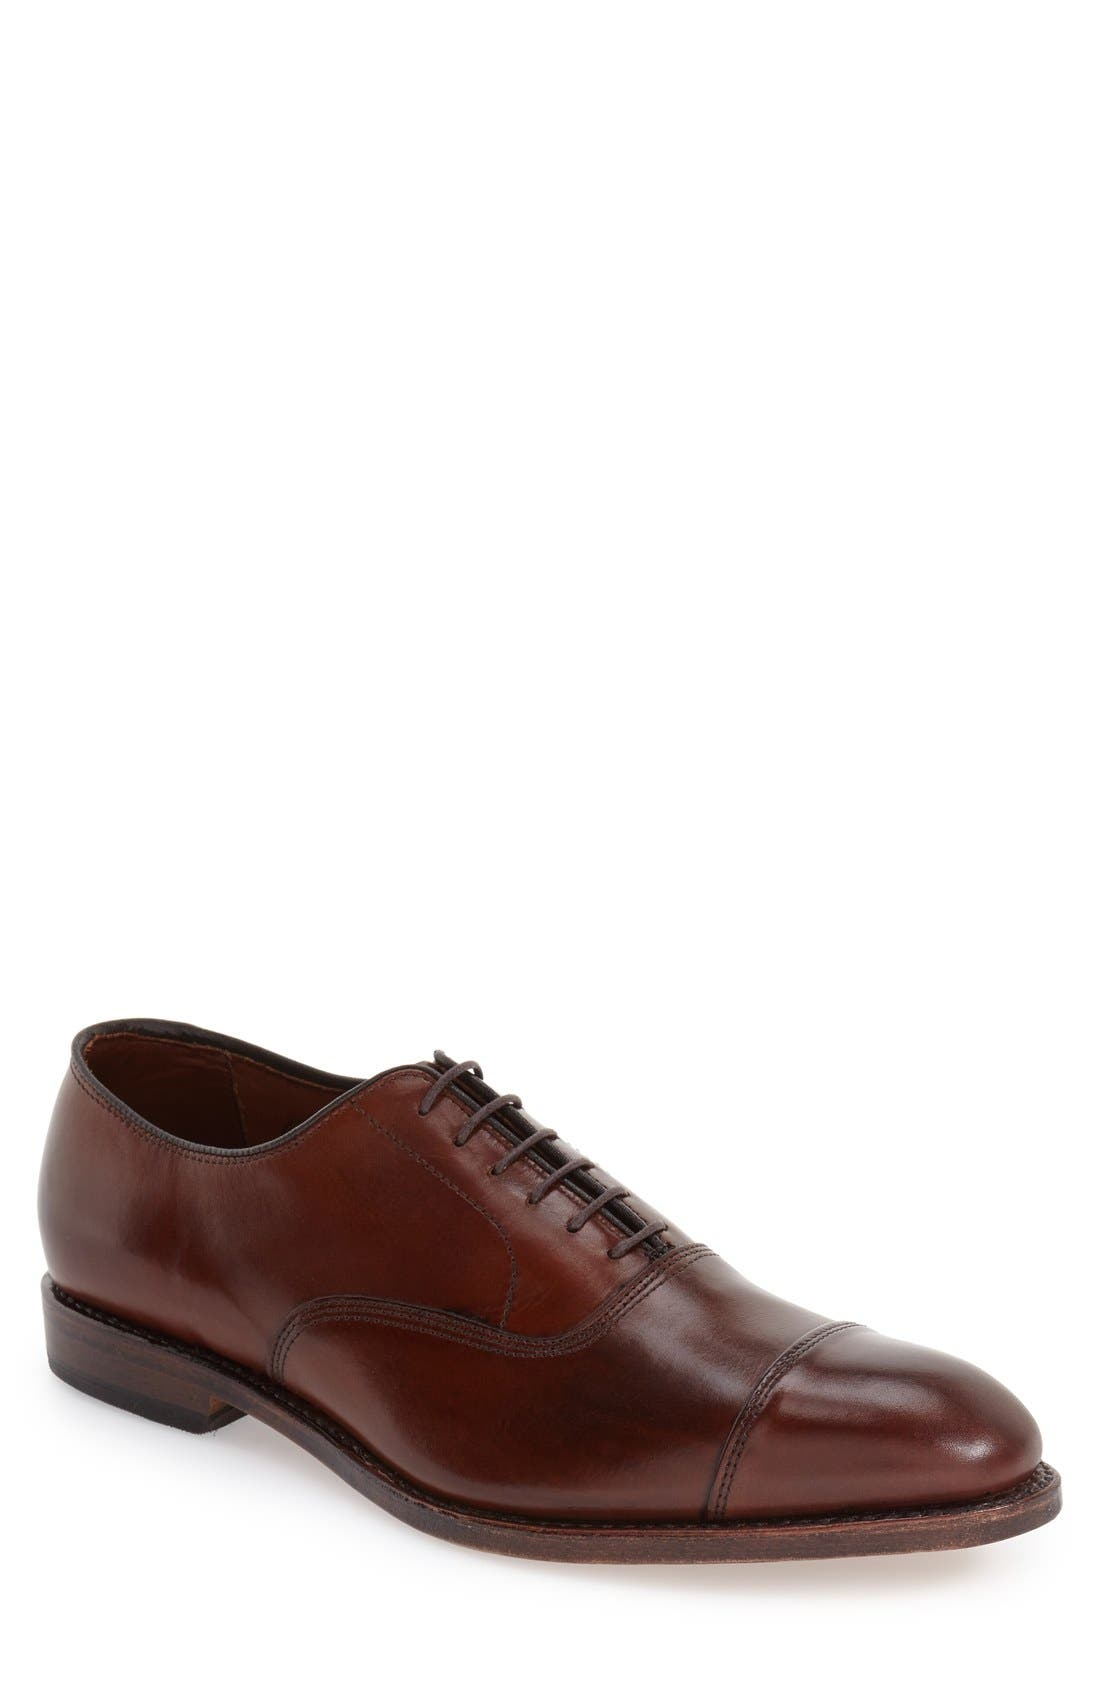 ALLEN EDMONDS 'Park Avenue' Cap Toe Oxford, Main, color, DARK CHILI BURNISHED